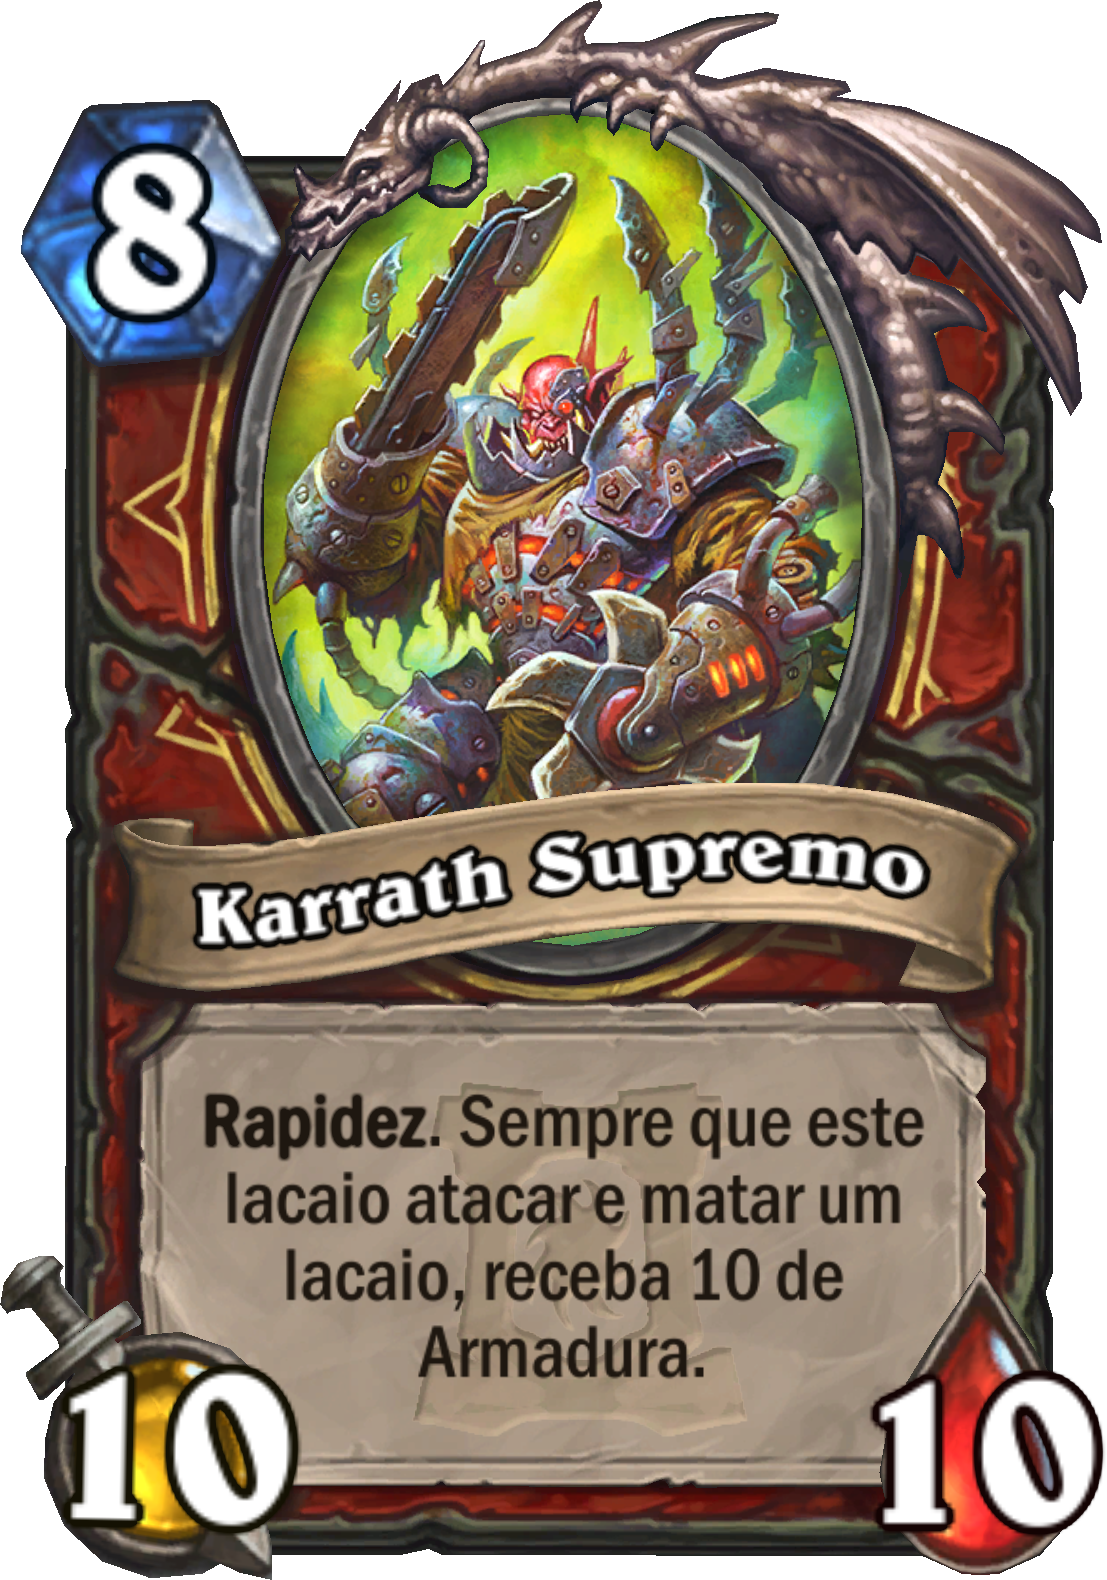 Karrath Supremo